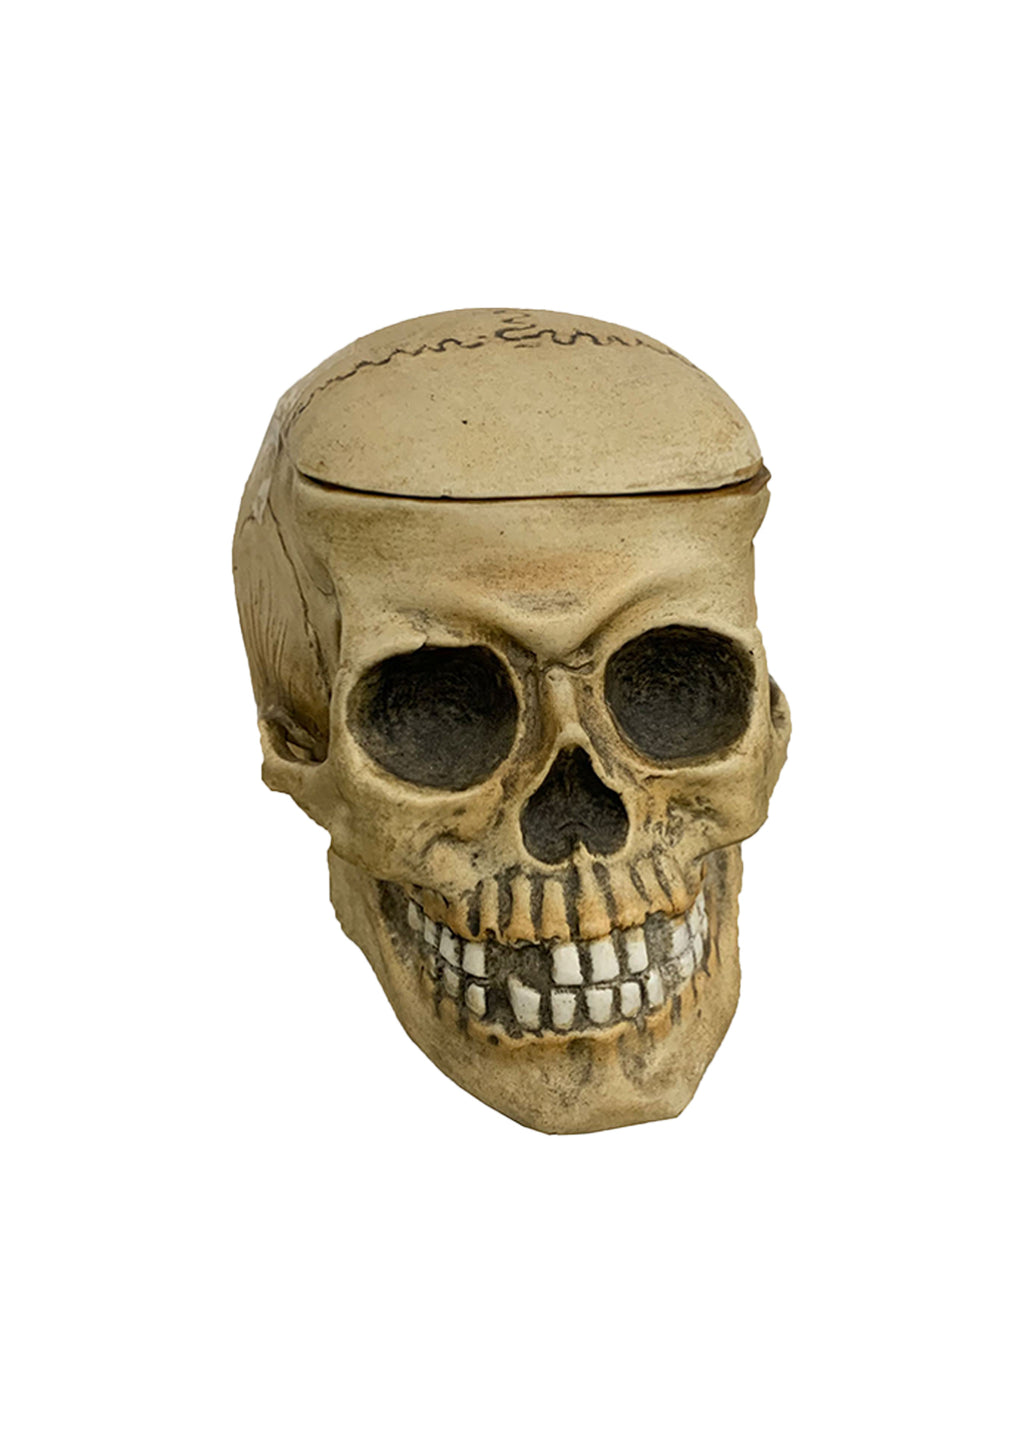 19TH CENTURY SMALL SKULL HUMIDOR  BY E. BOHNE - Accessories - Libertine